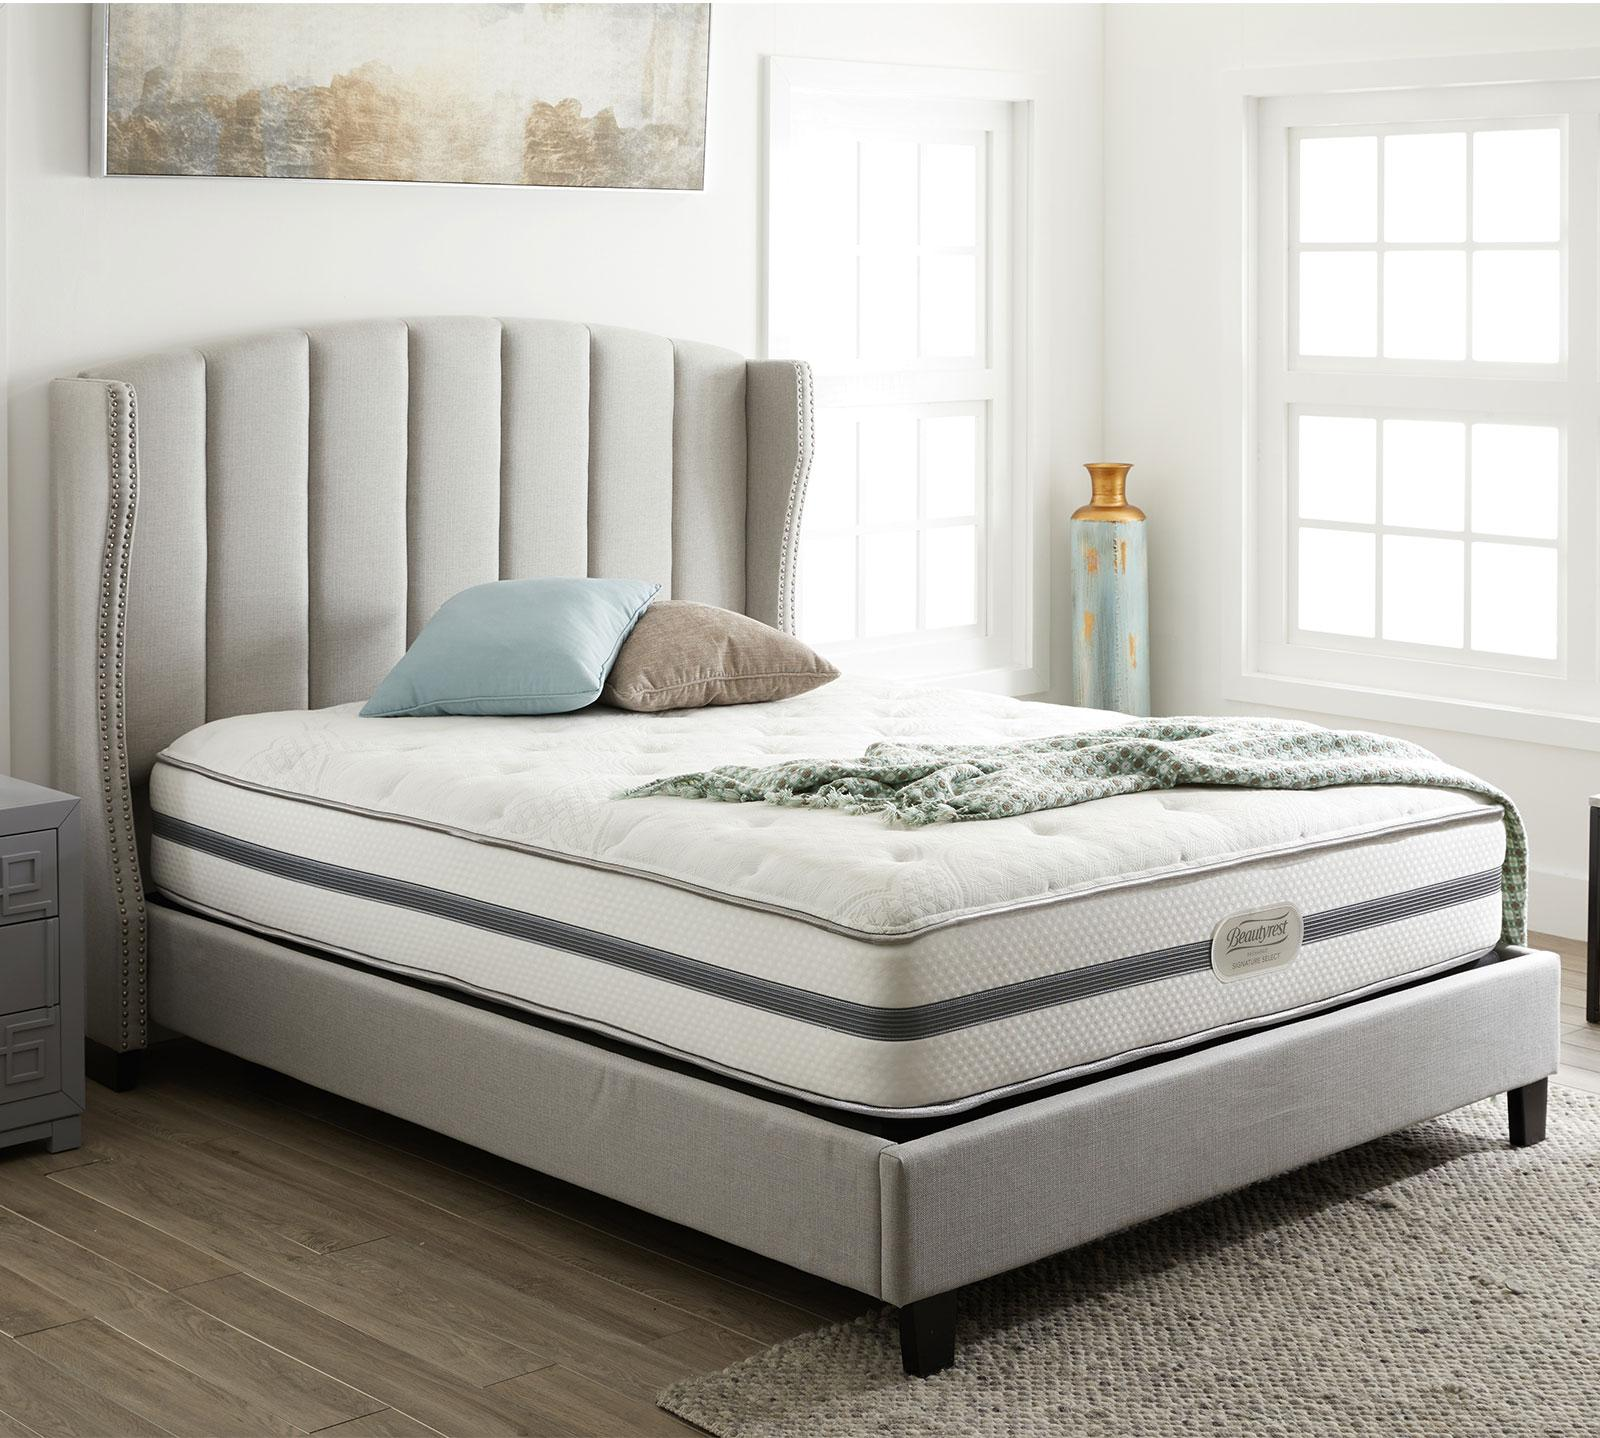 recharge signature select ashaway 11 plush mattress. Black Bedroom Furniture Sets. Home Design Ideas